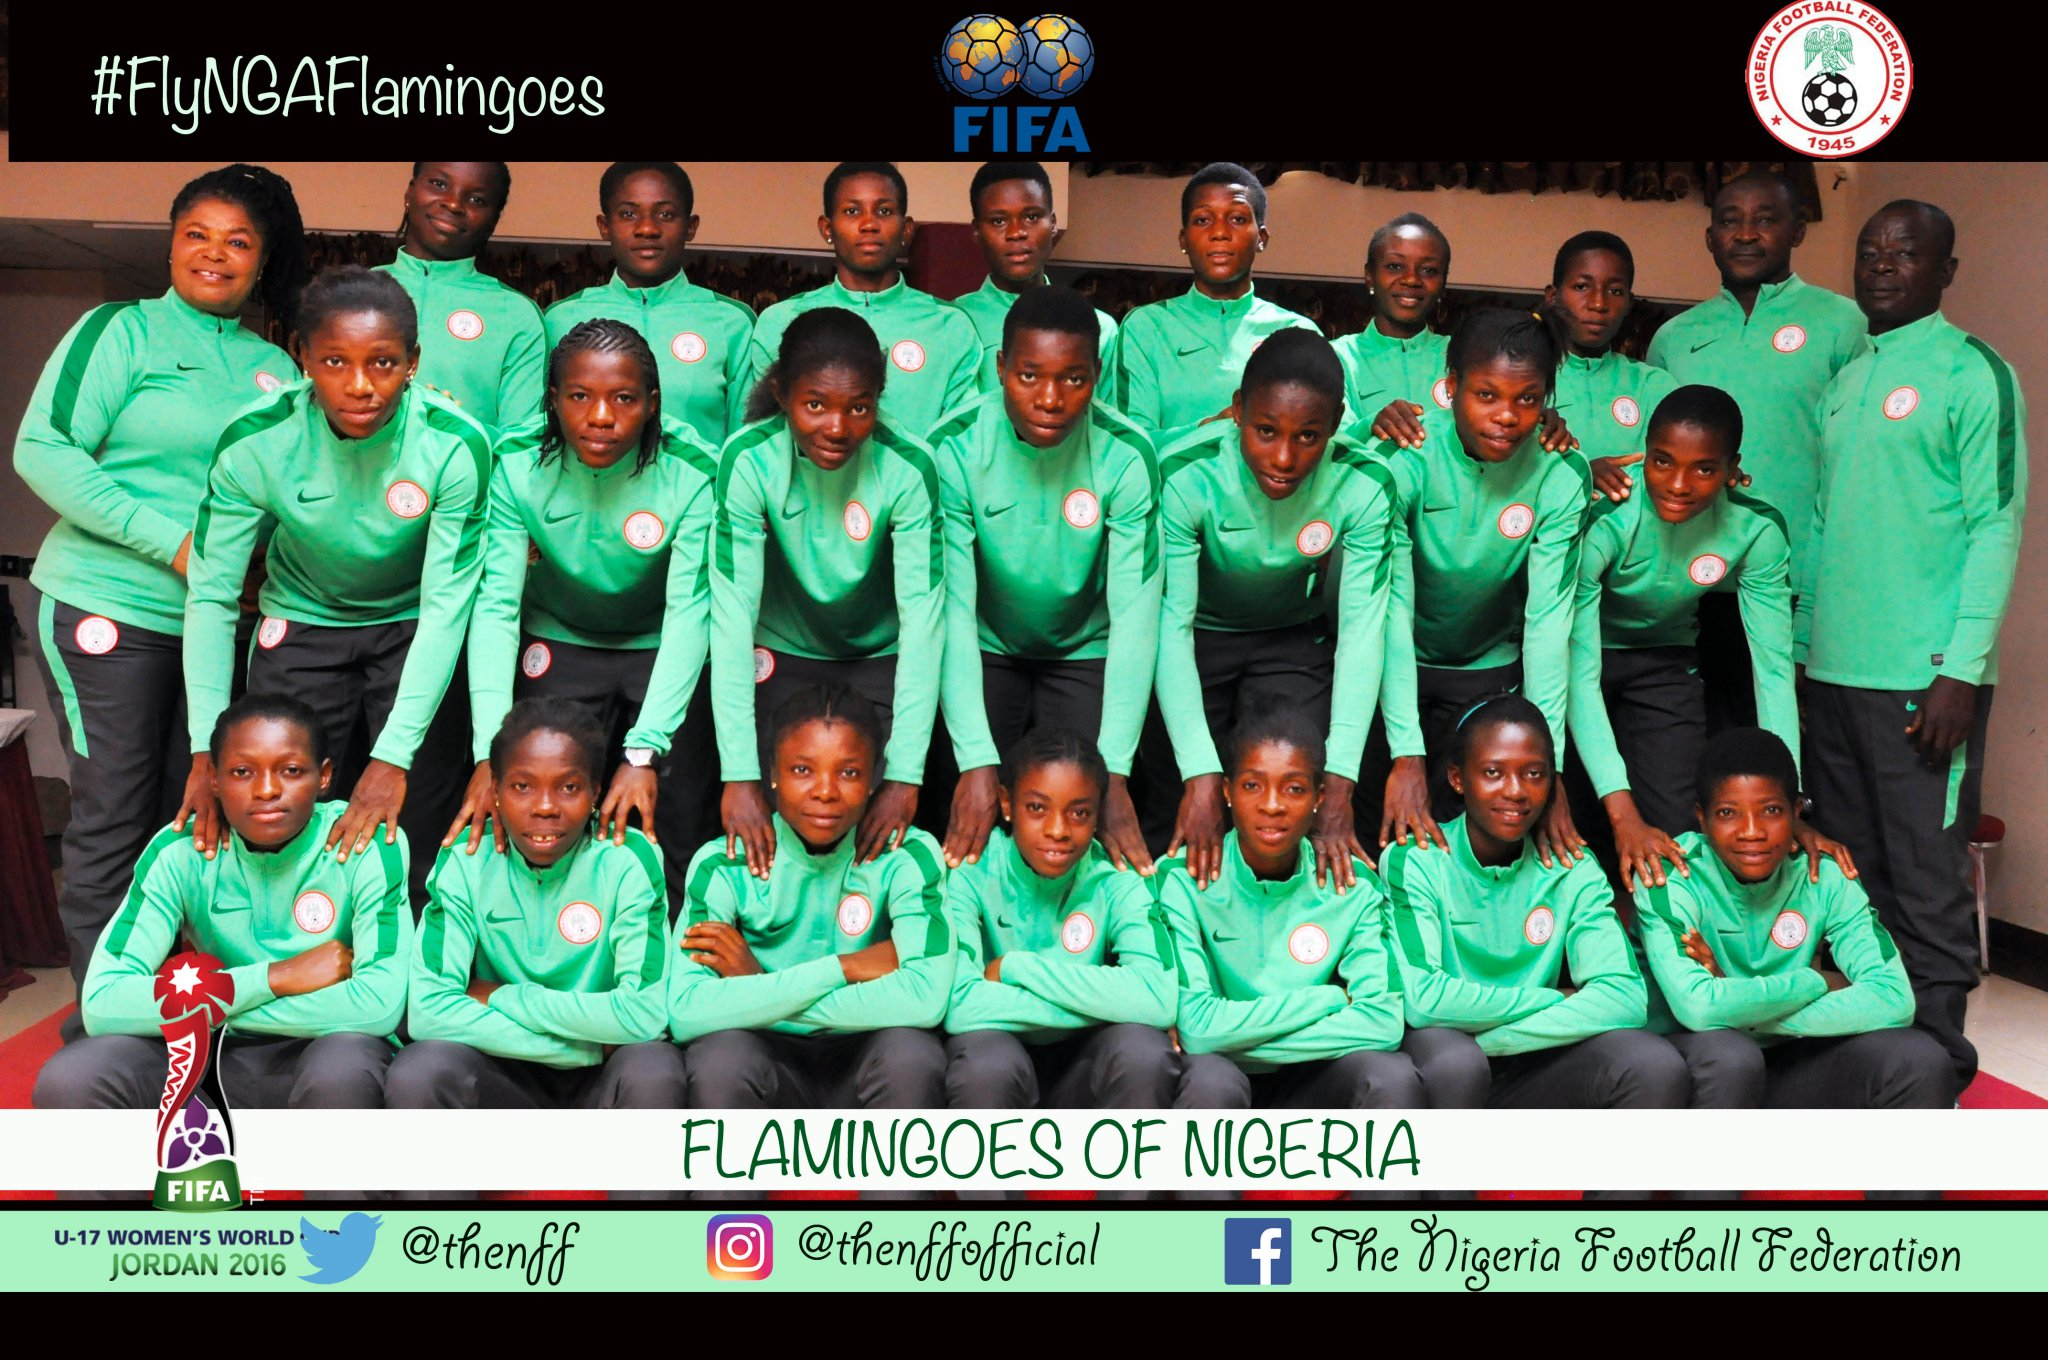 U-17 WWC: Flamingoes Face Early Exit After England Draw